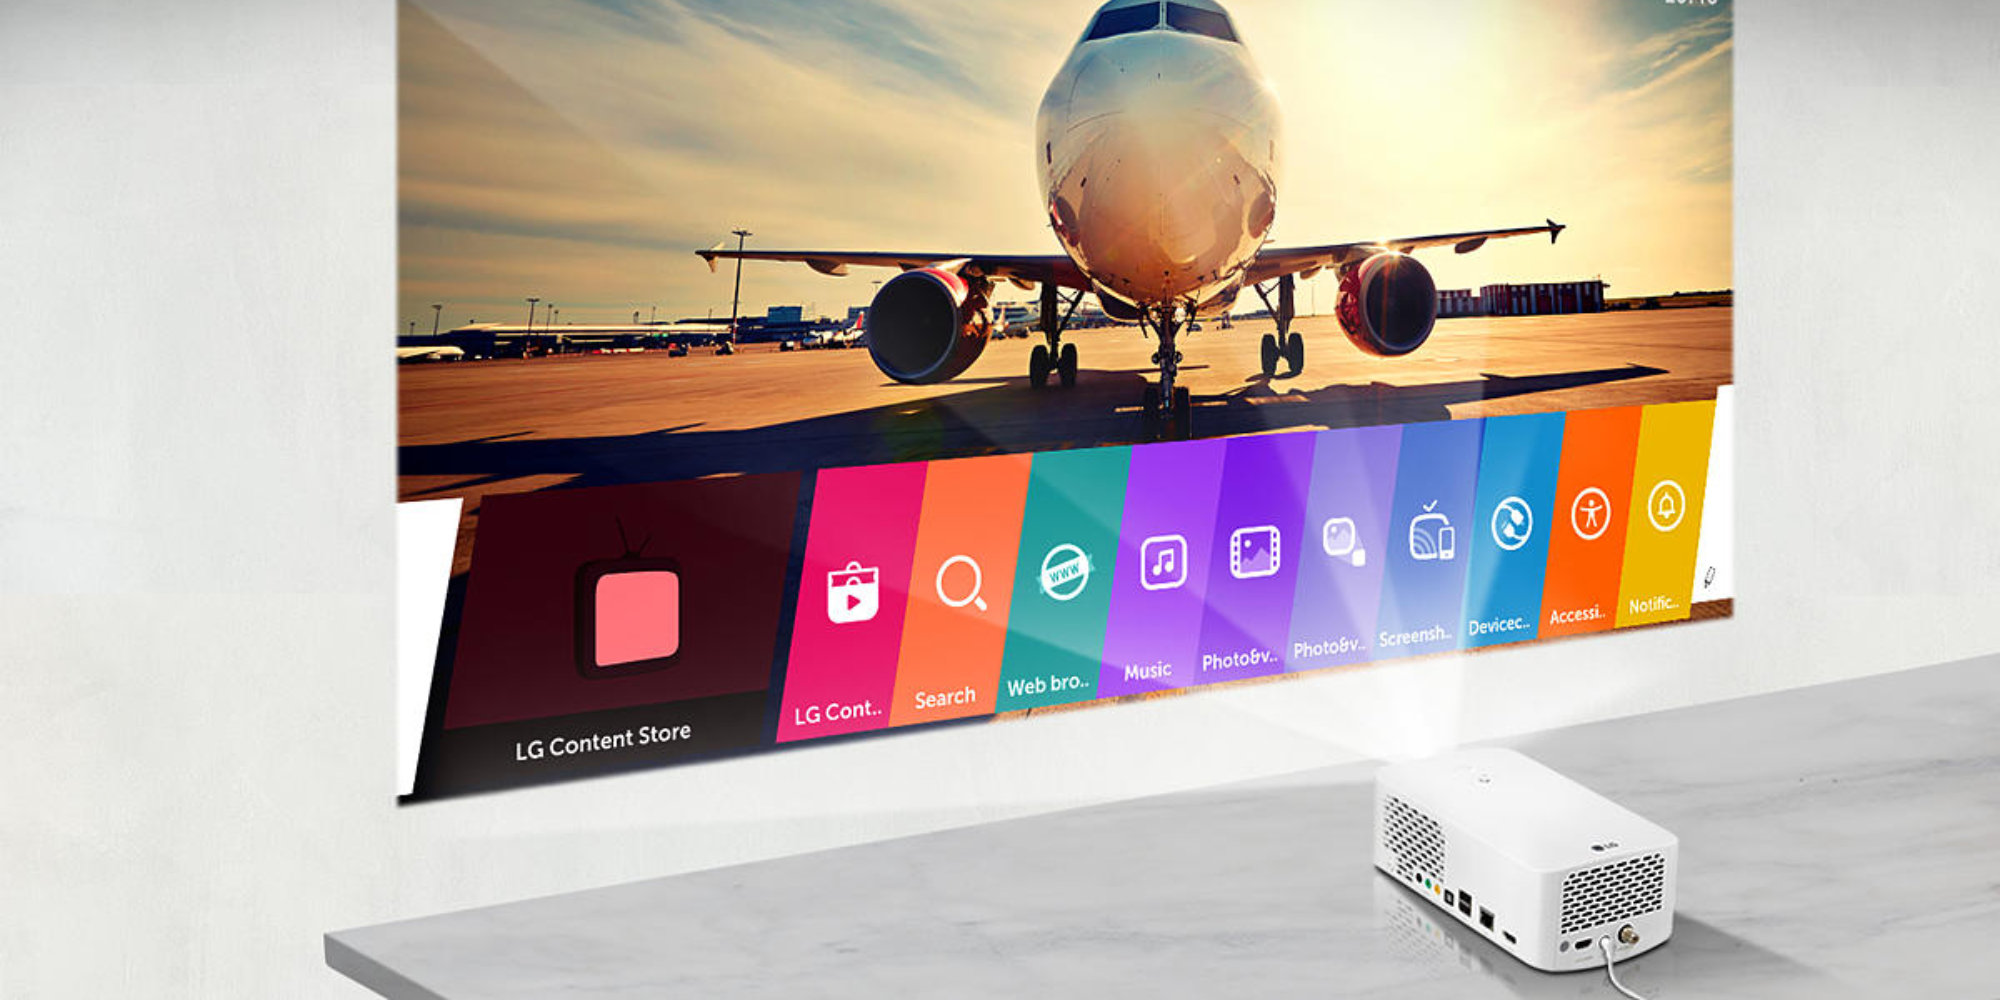 LG's 1080p Smart Projector sports webOS and produces a 10-foot display: $549 (Reg. $800+)